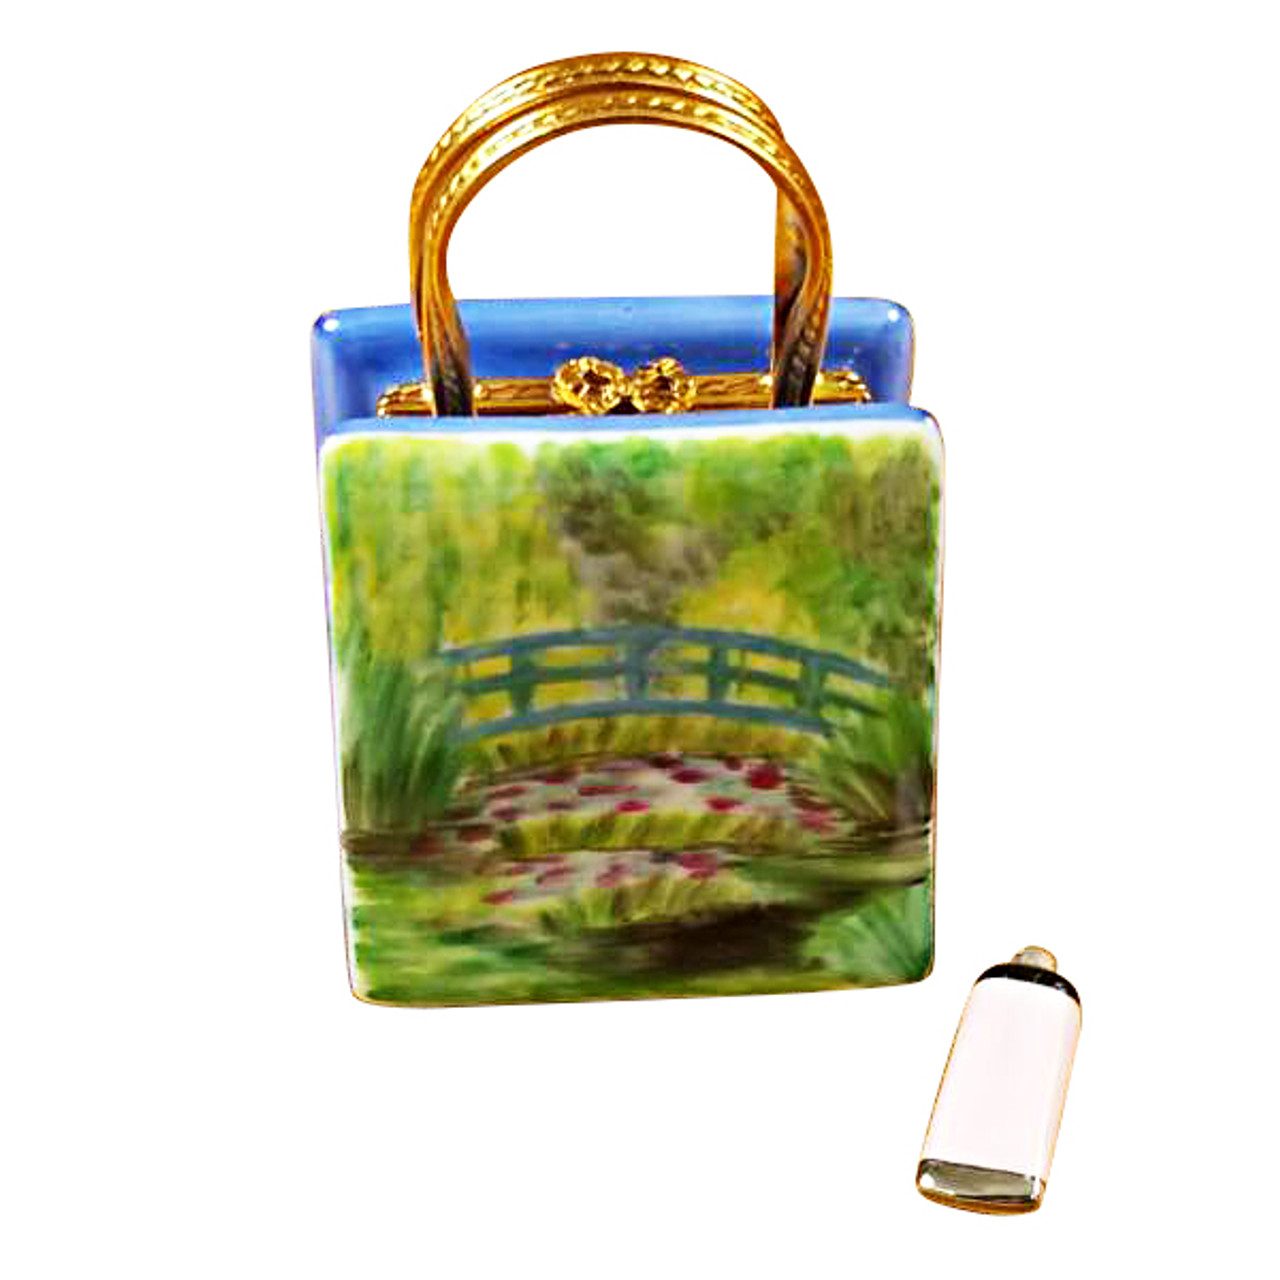 Monet Bag With Bridge And Water Lily Includes Removable Paint Tube Rochard Limoges Box